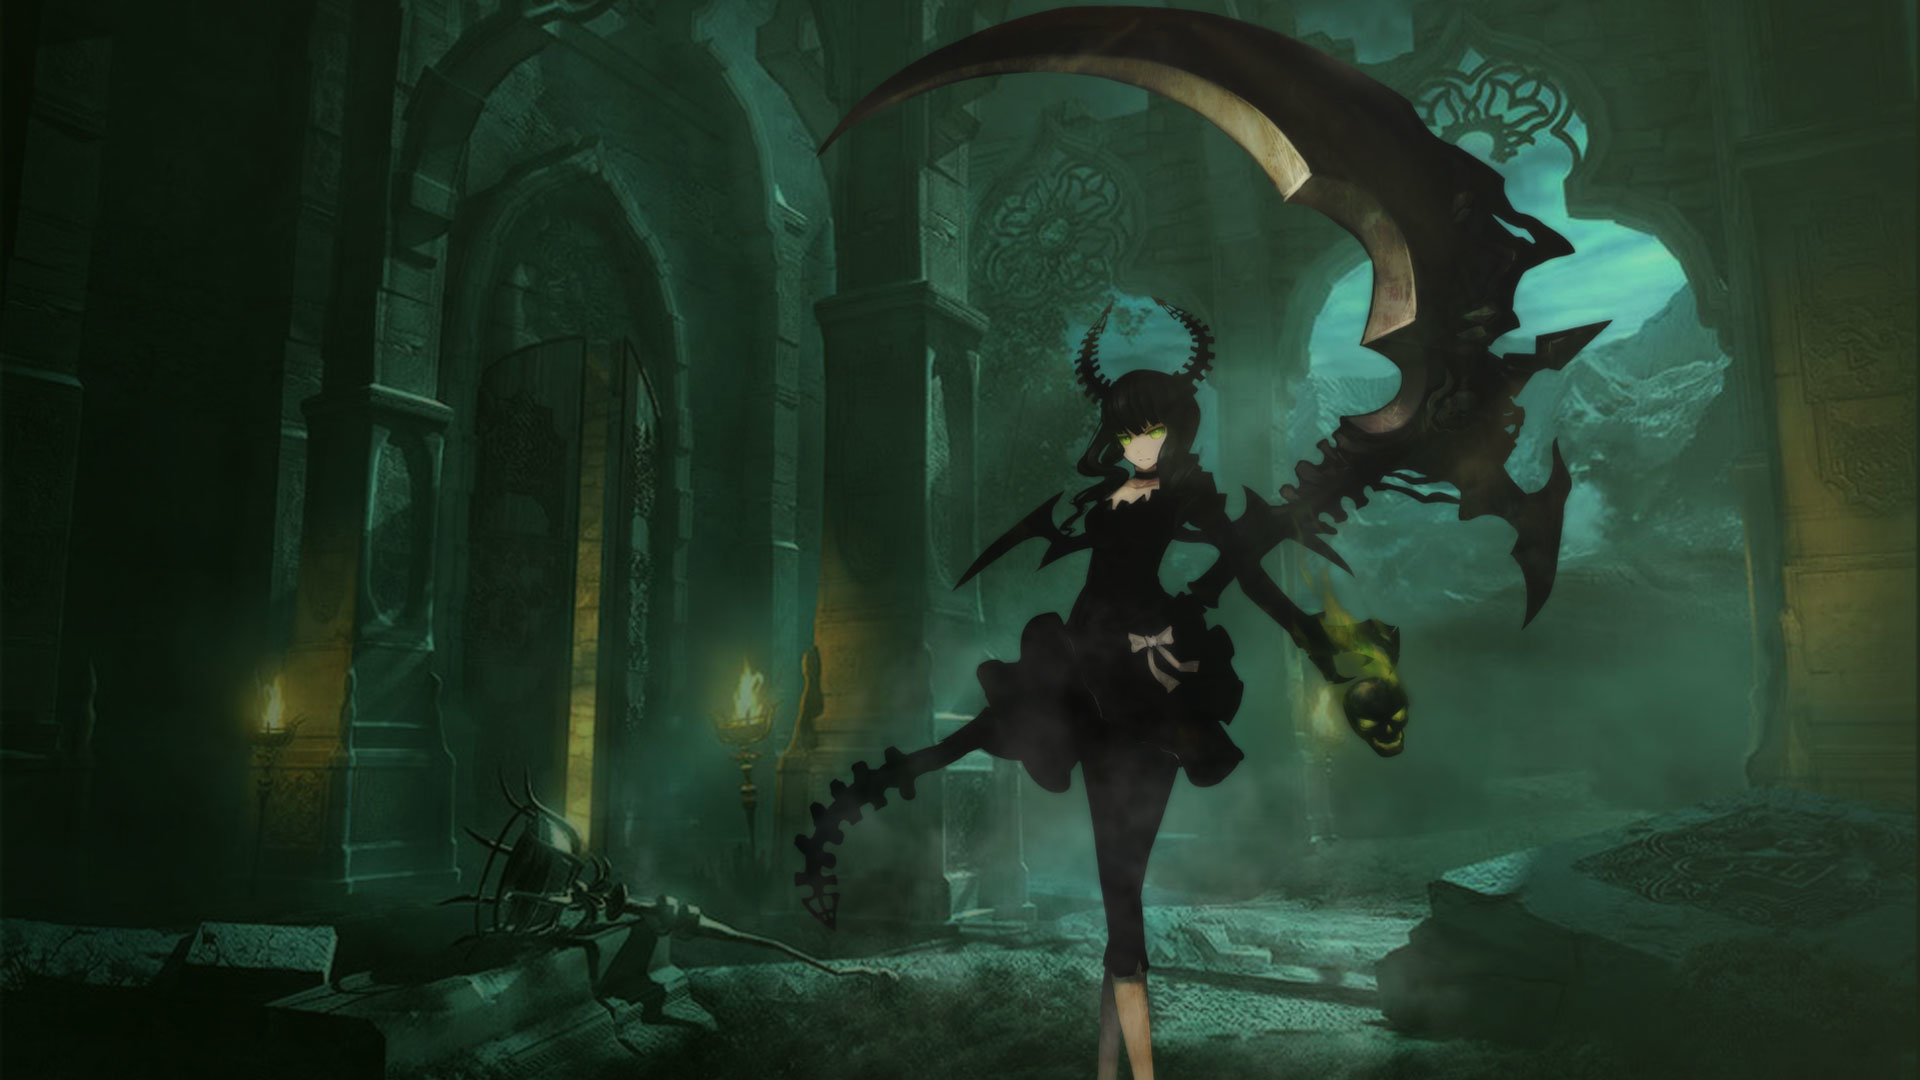 Awesome Dead Master (Black Rock Shooter) free background ID:454993 for hd 1920x1080 desktop